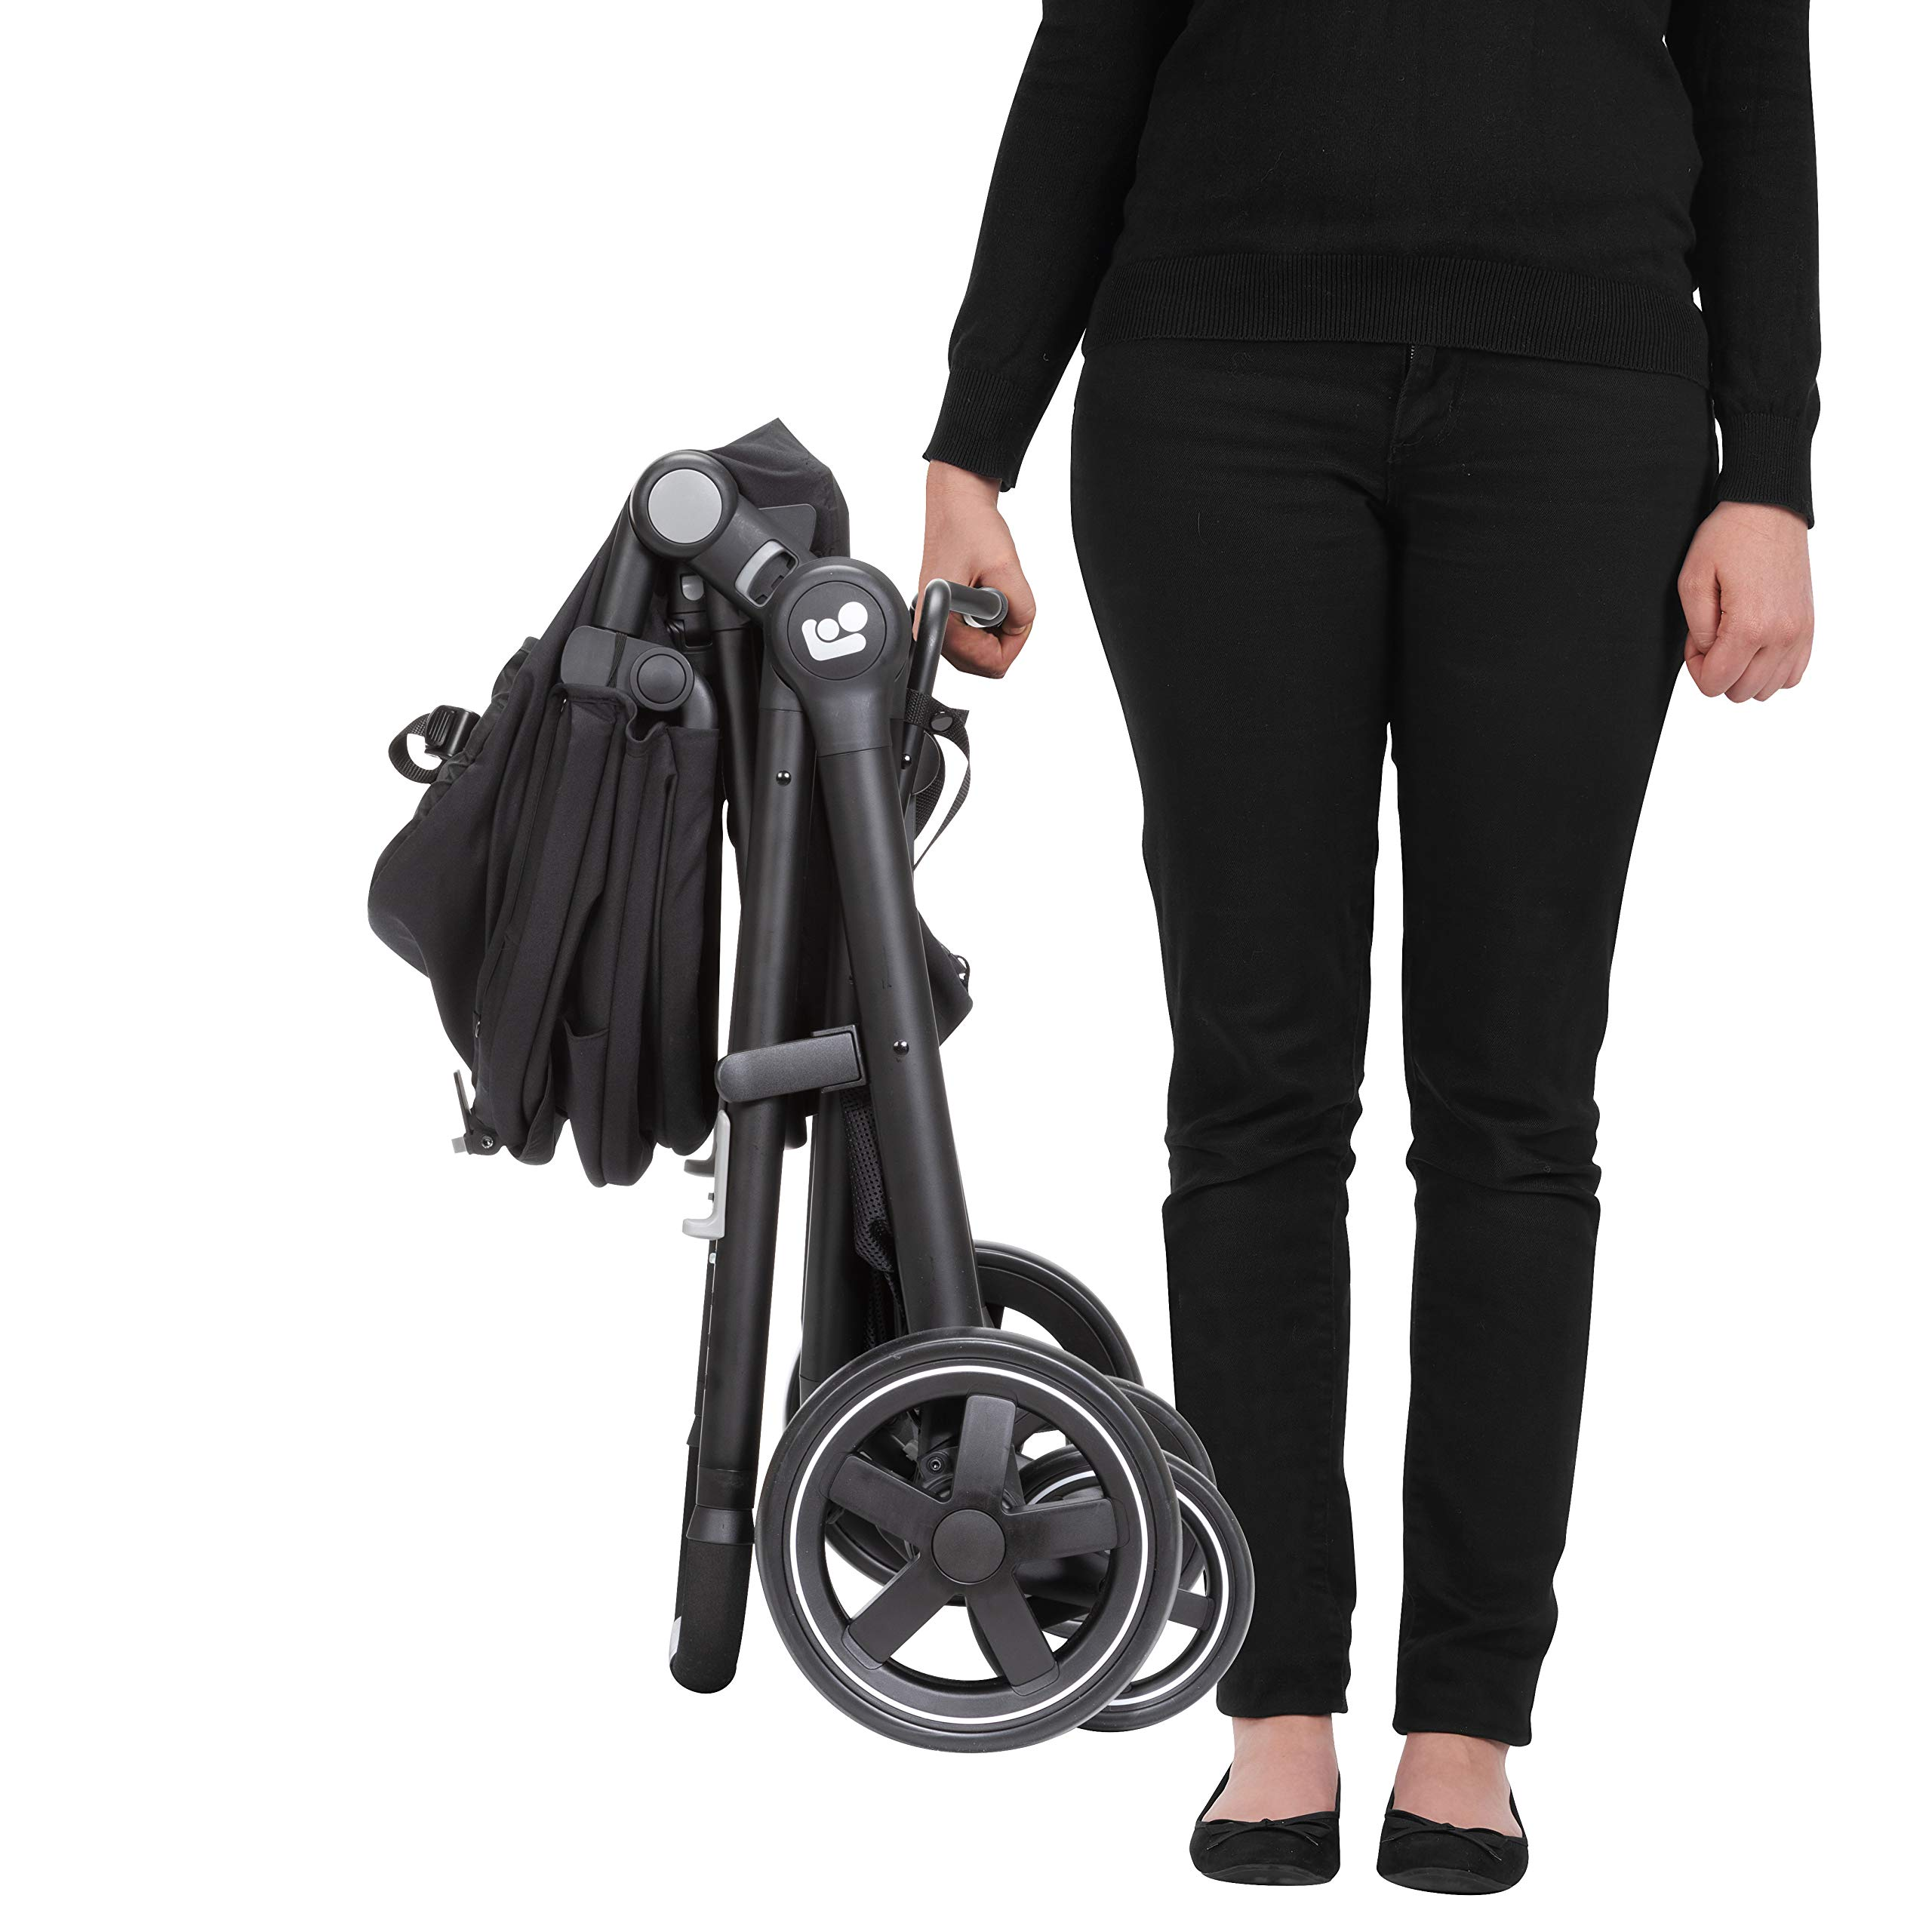 Maxi-Cosi Zelia Stroller, Night Black, One Size by Maxi-Cosi (Image #6)